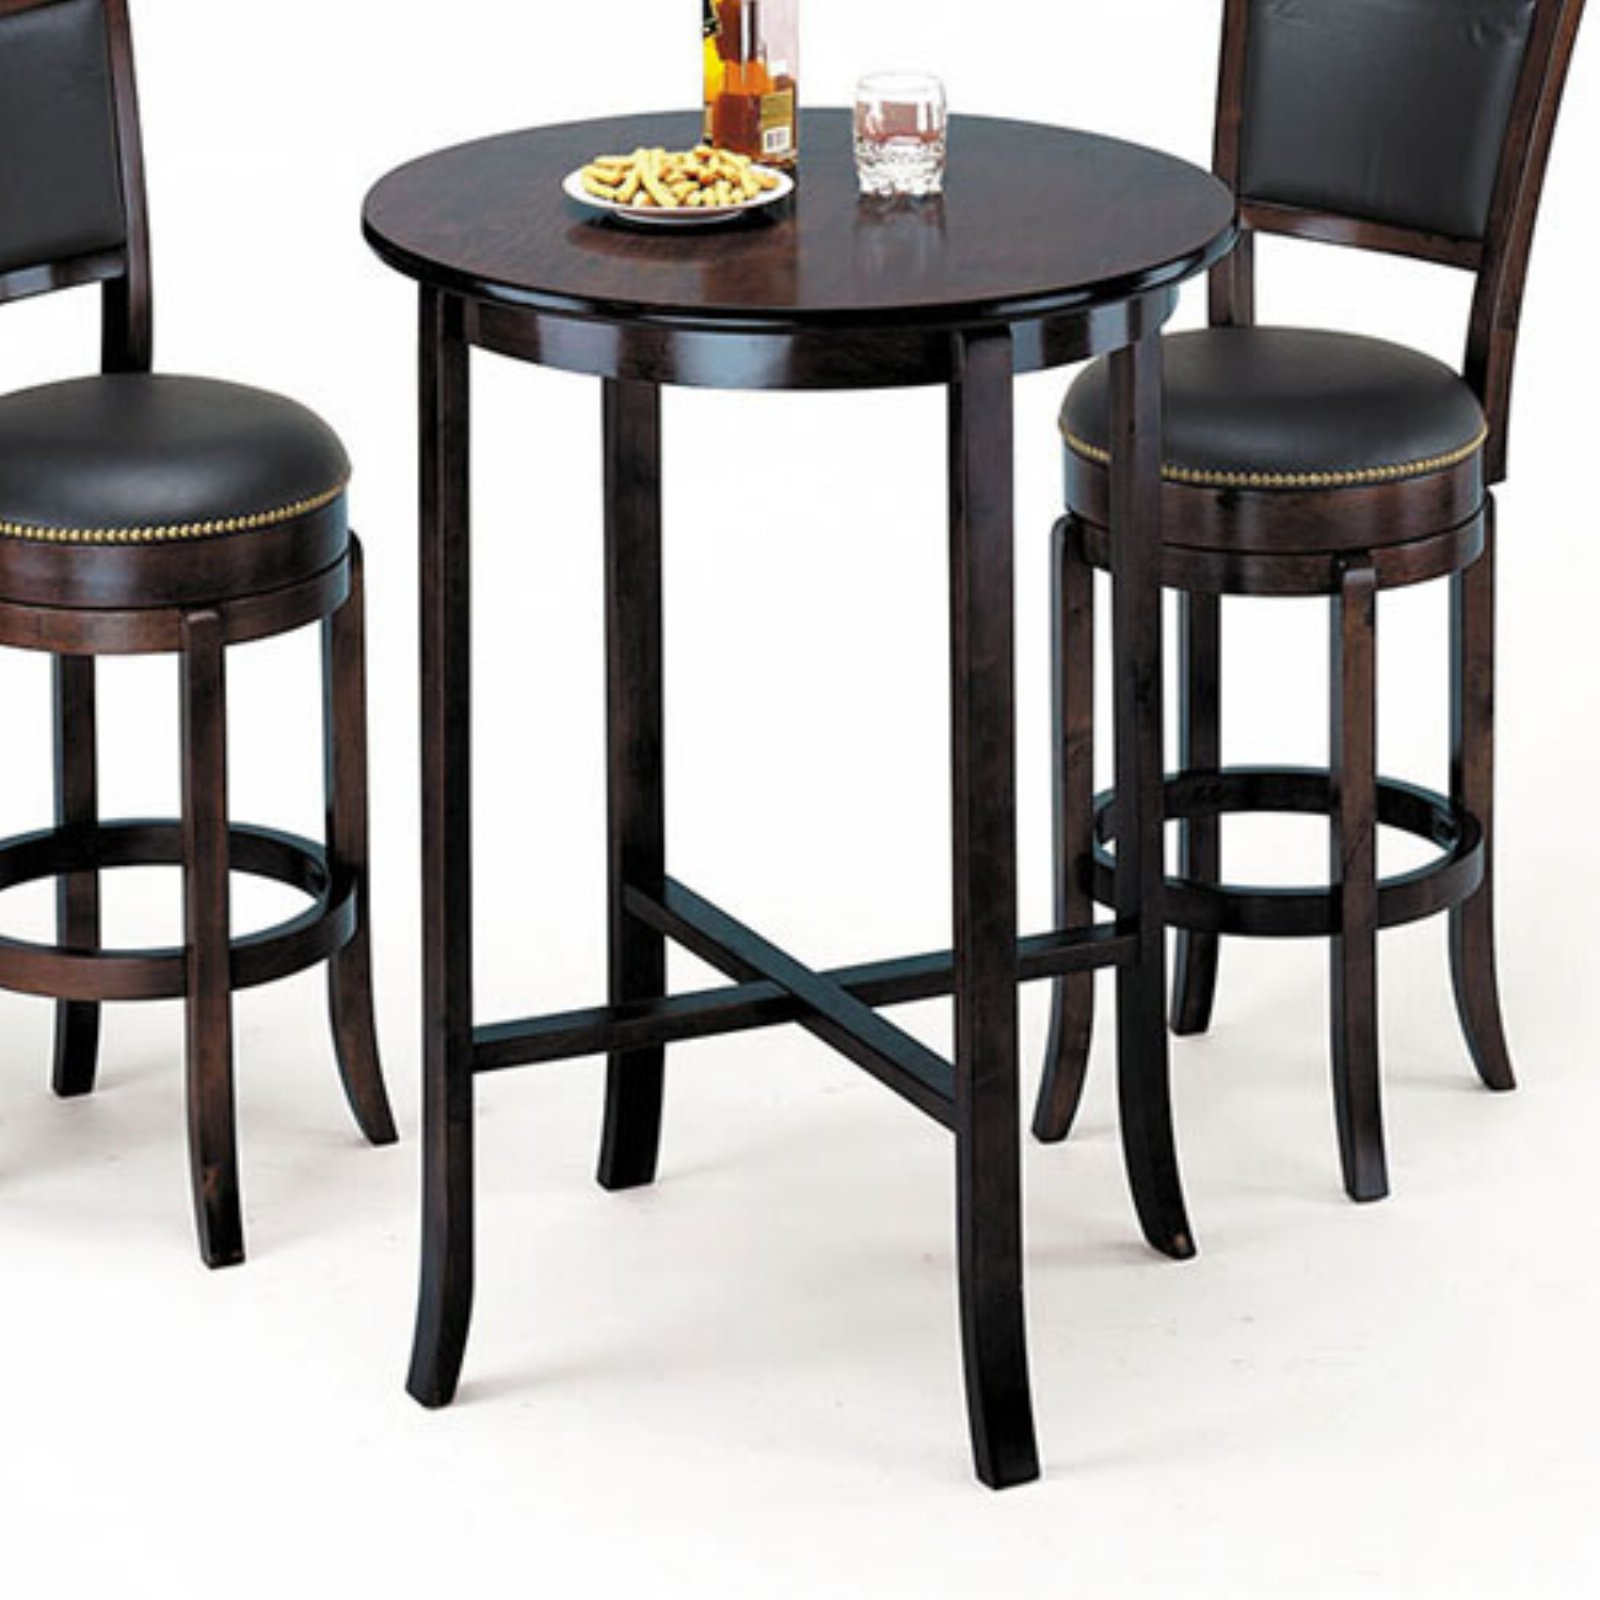 Acme Furniture Chelsea Pub Table by Acme Furniture